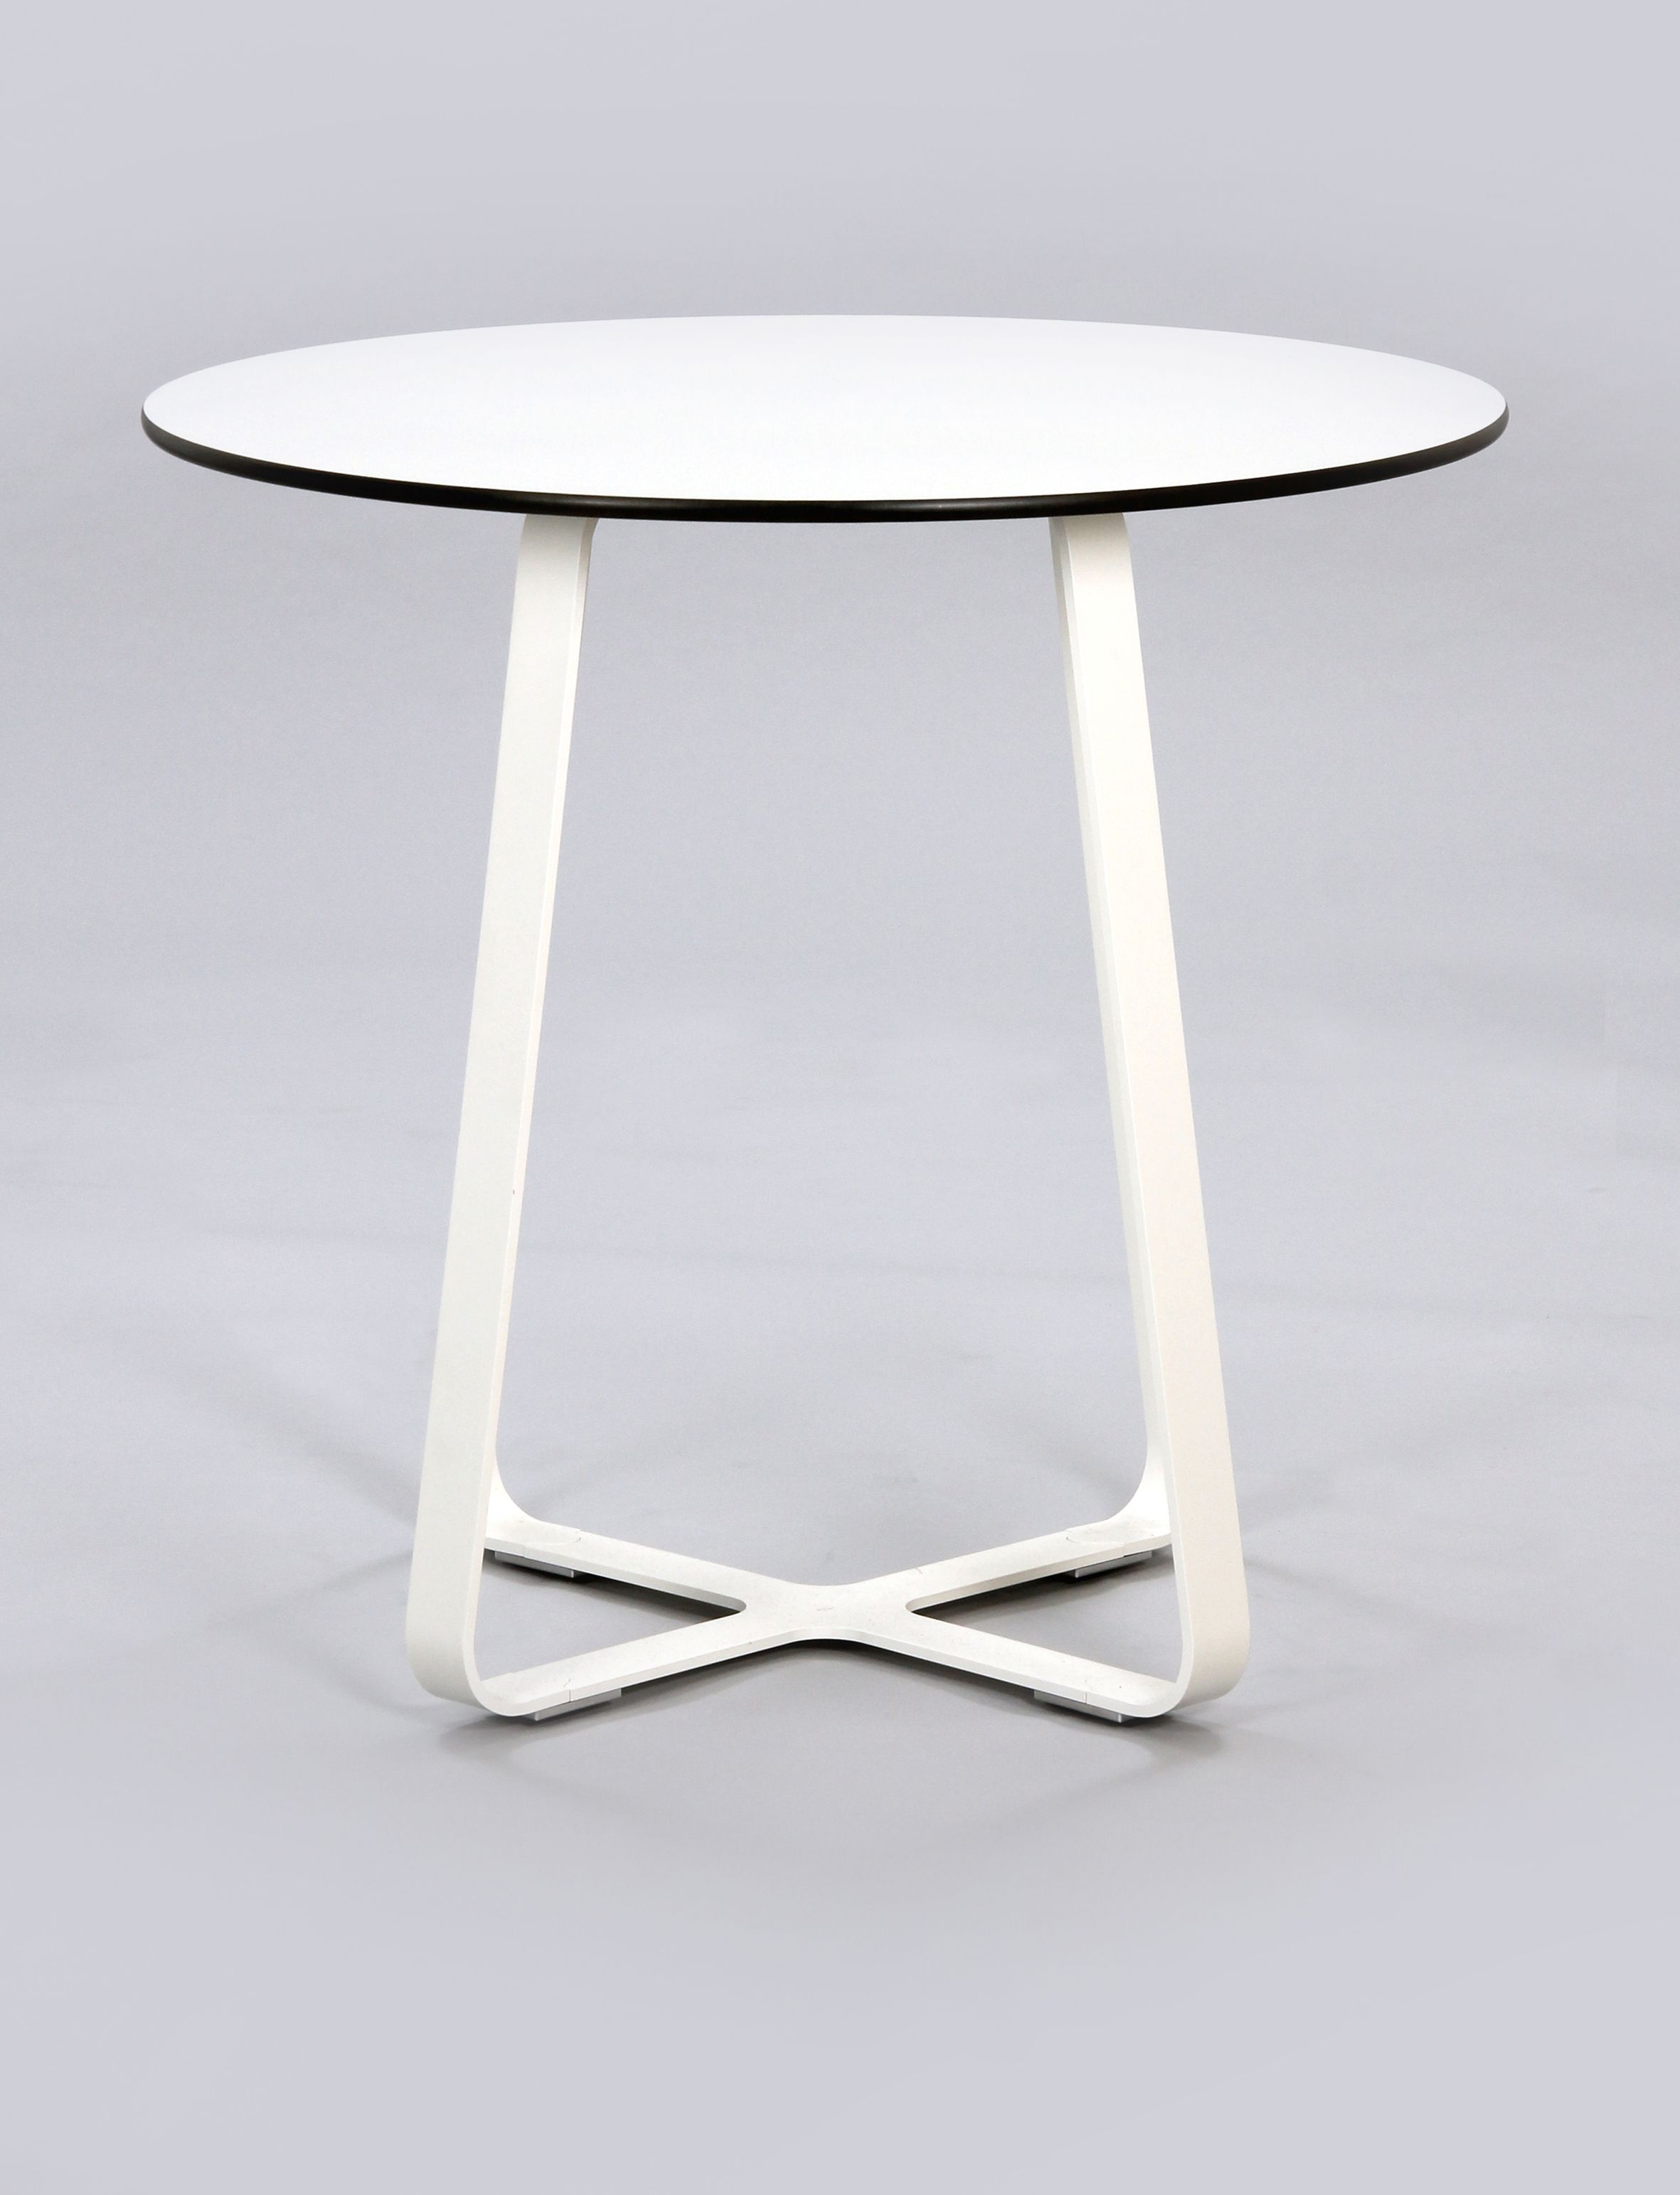 Our Frog Table With A White Frame And White MFMDF Top. We Really Like The